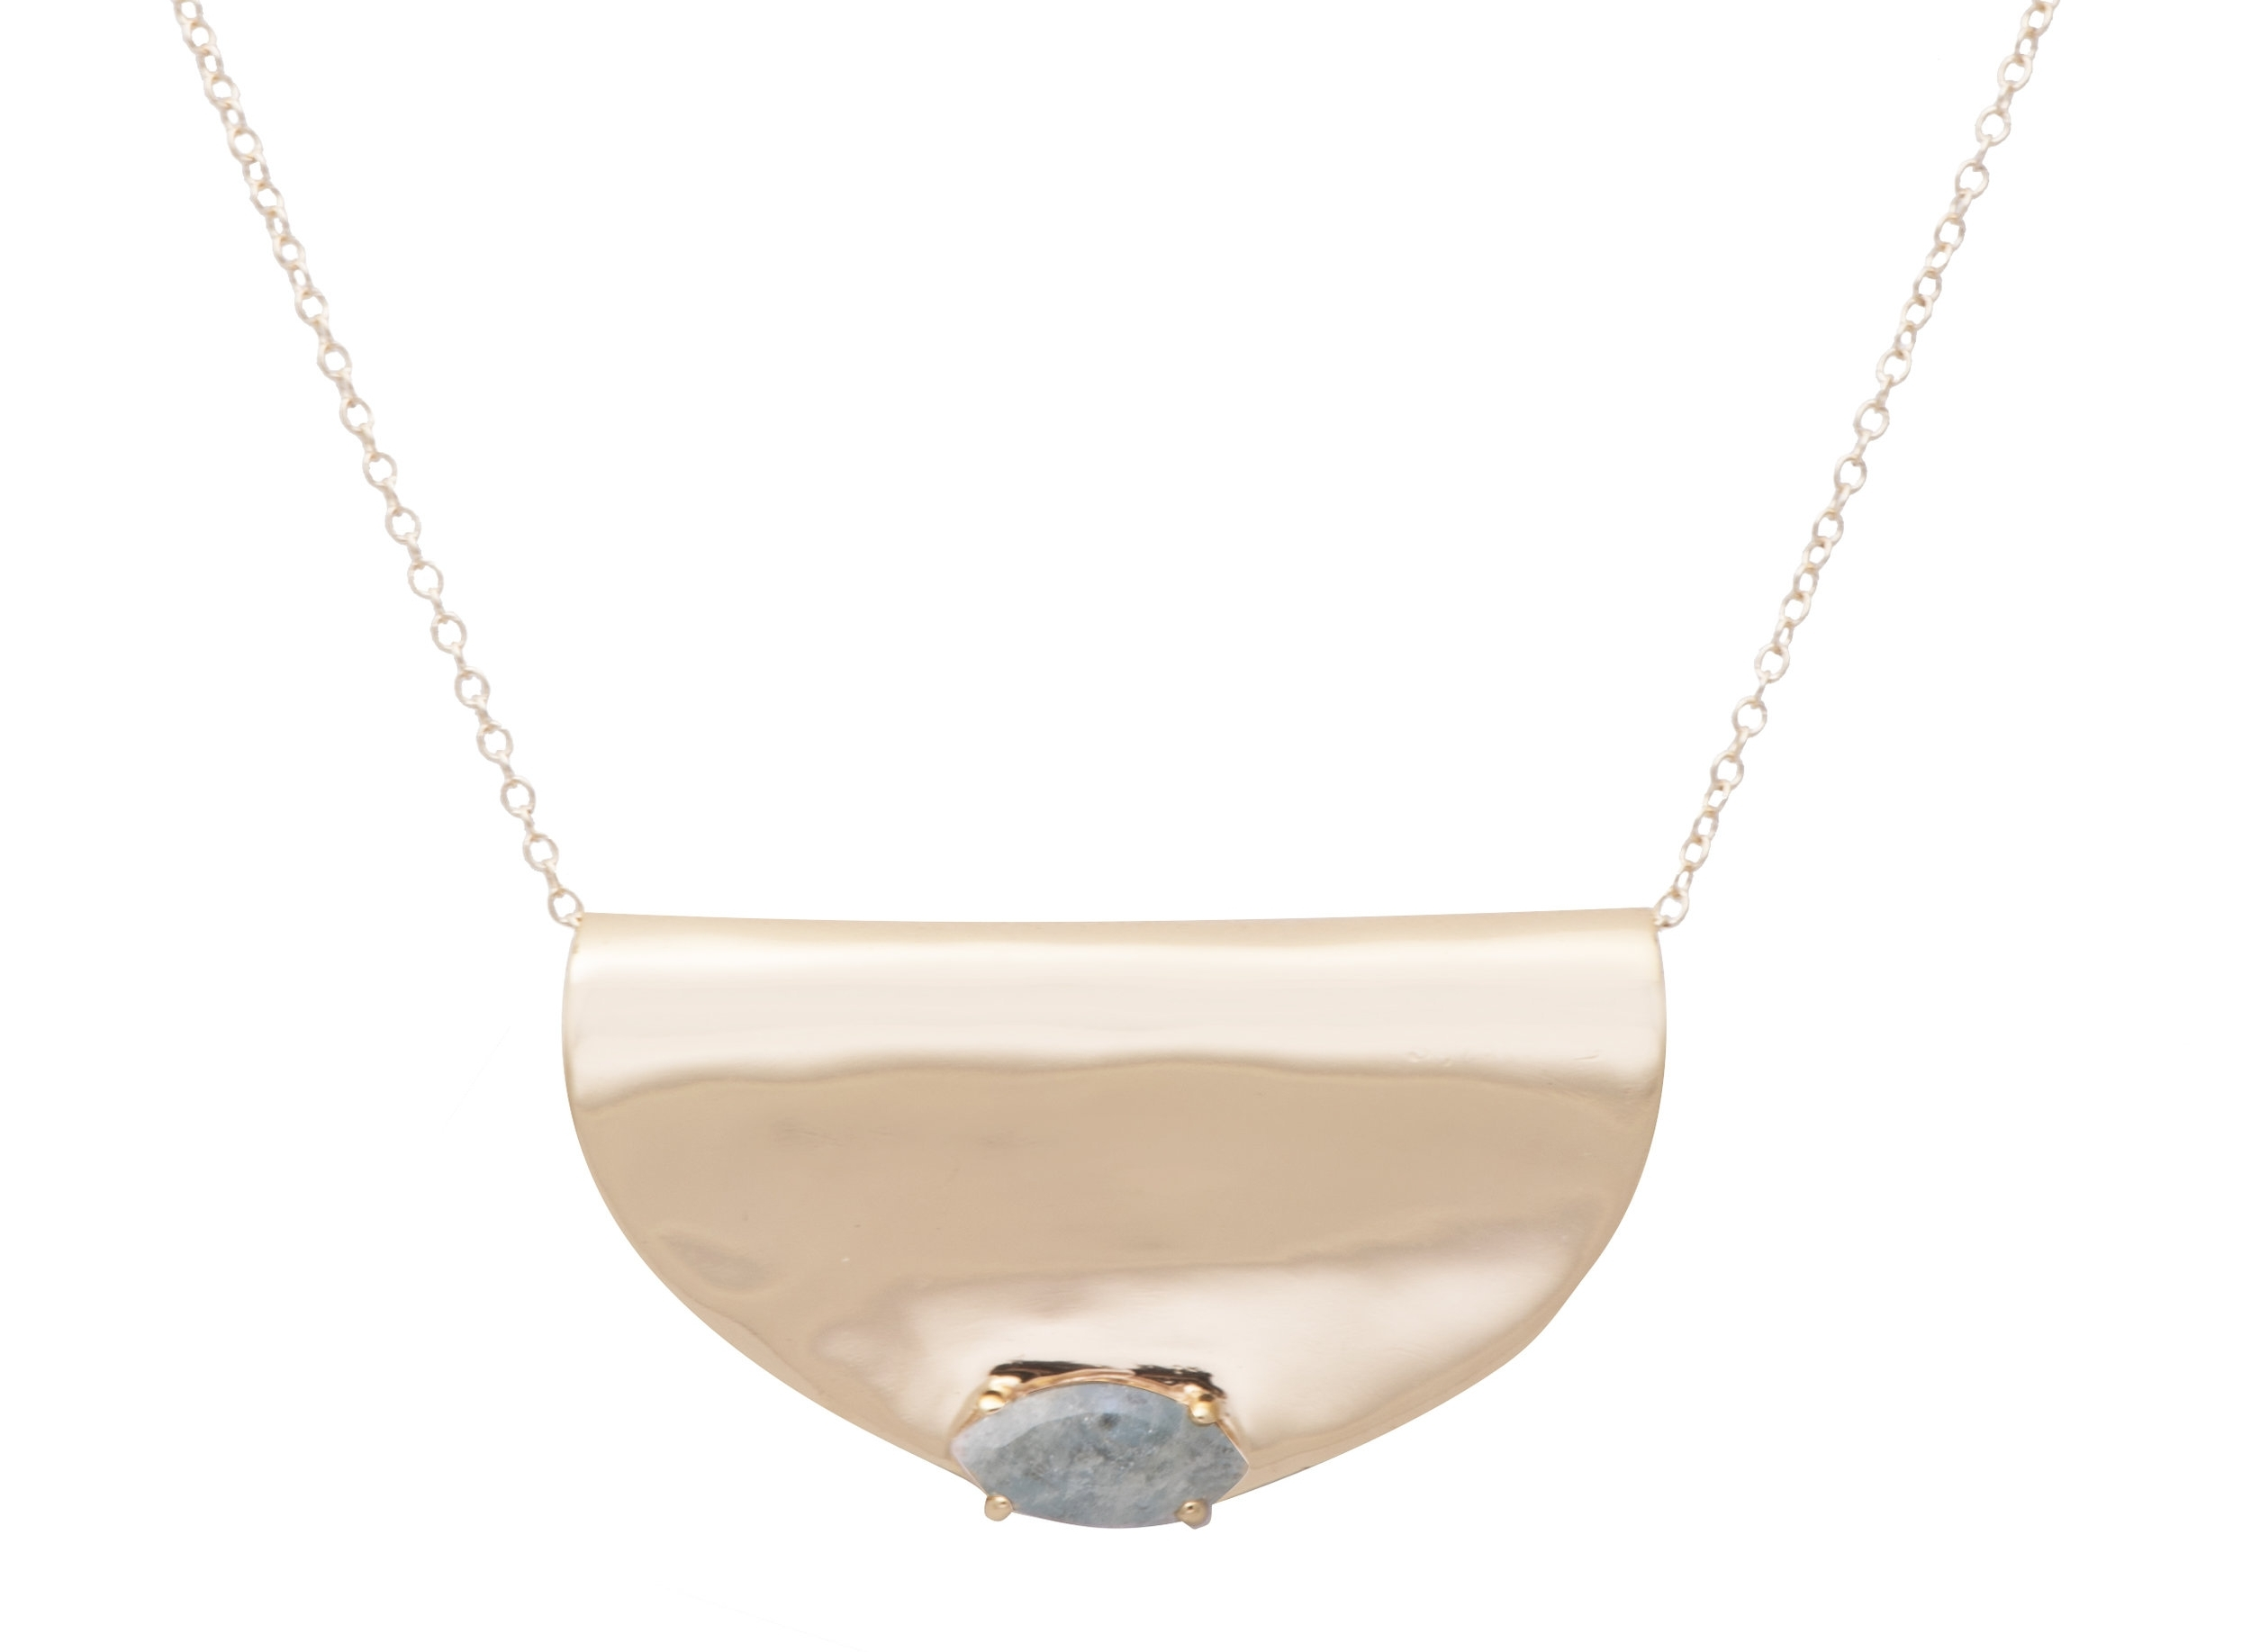 Lucidity Necklace